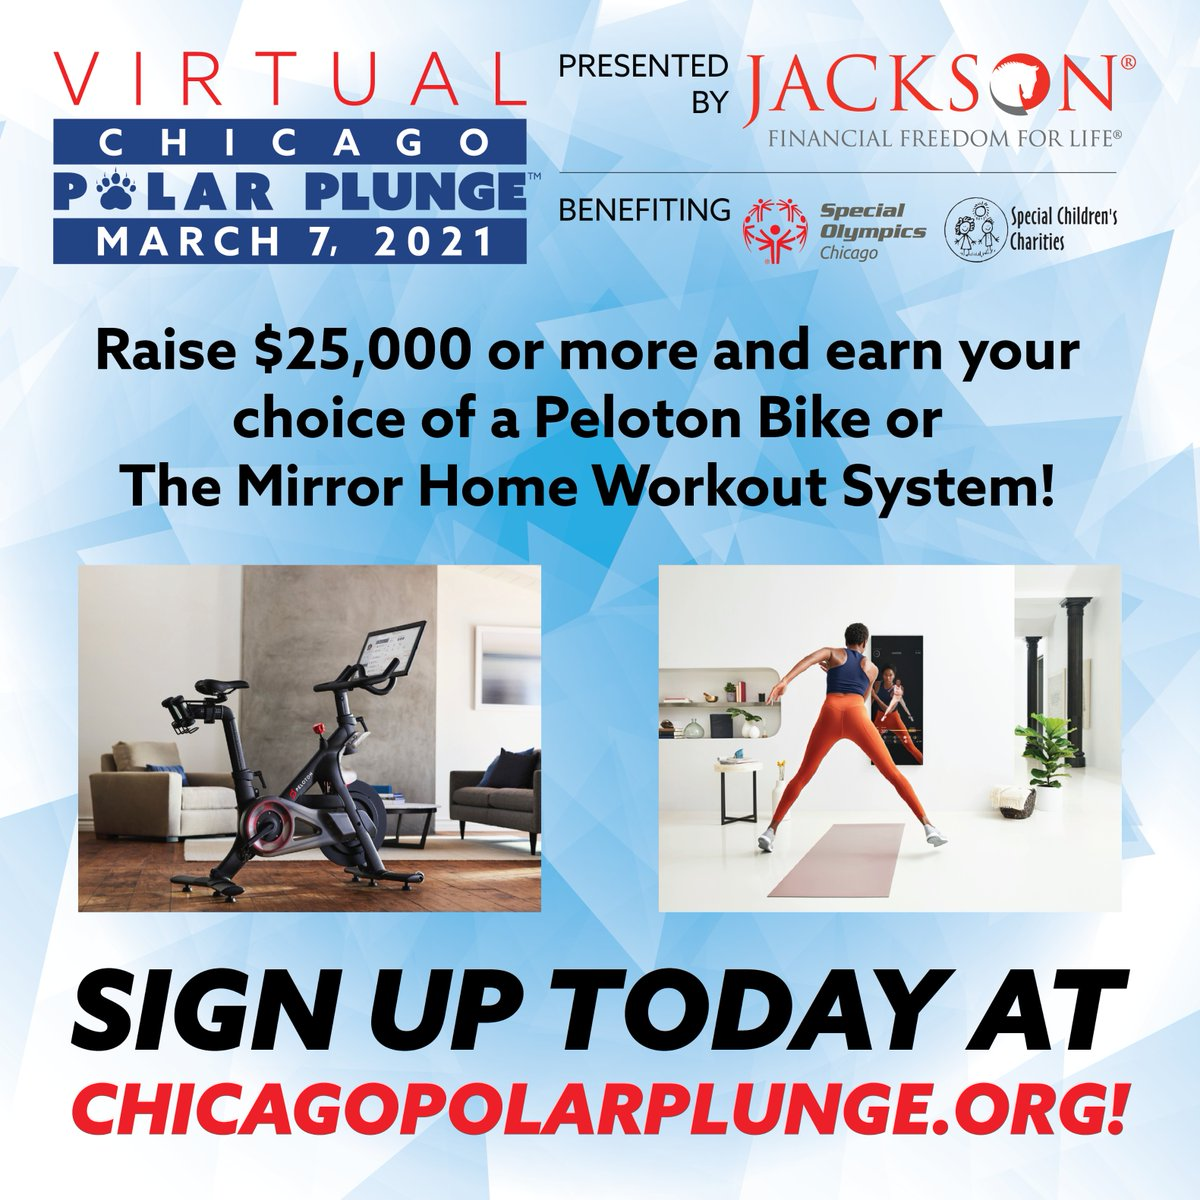 Register for the Virtual Chicago Polar Plunge, fundraise, and earn a Peloton or The Mirror! https://t.co/wxRsdHg7Dp https://t.co/IQaMvfl7Cv